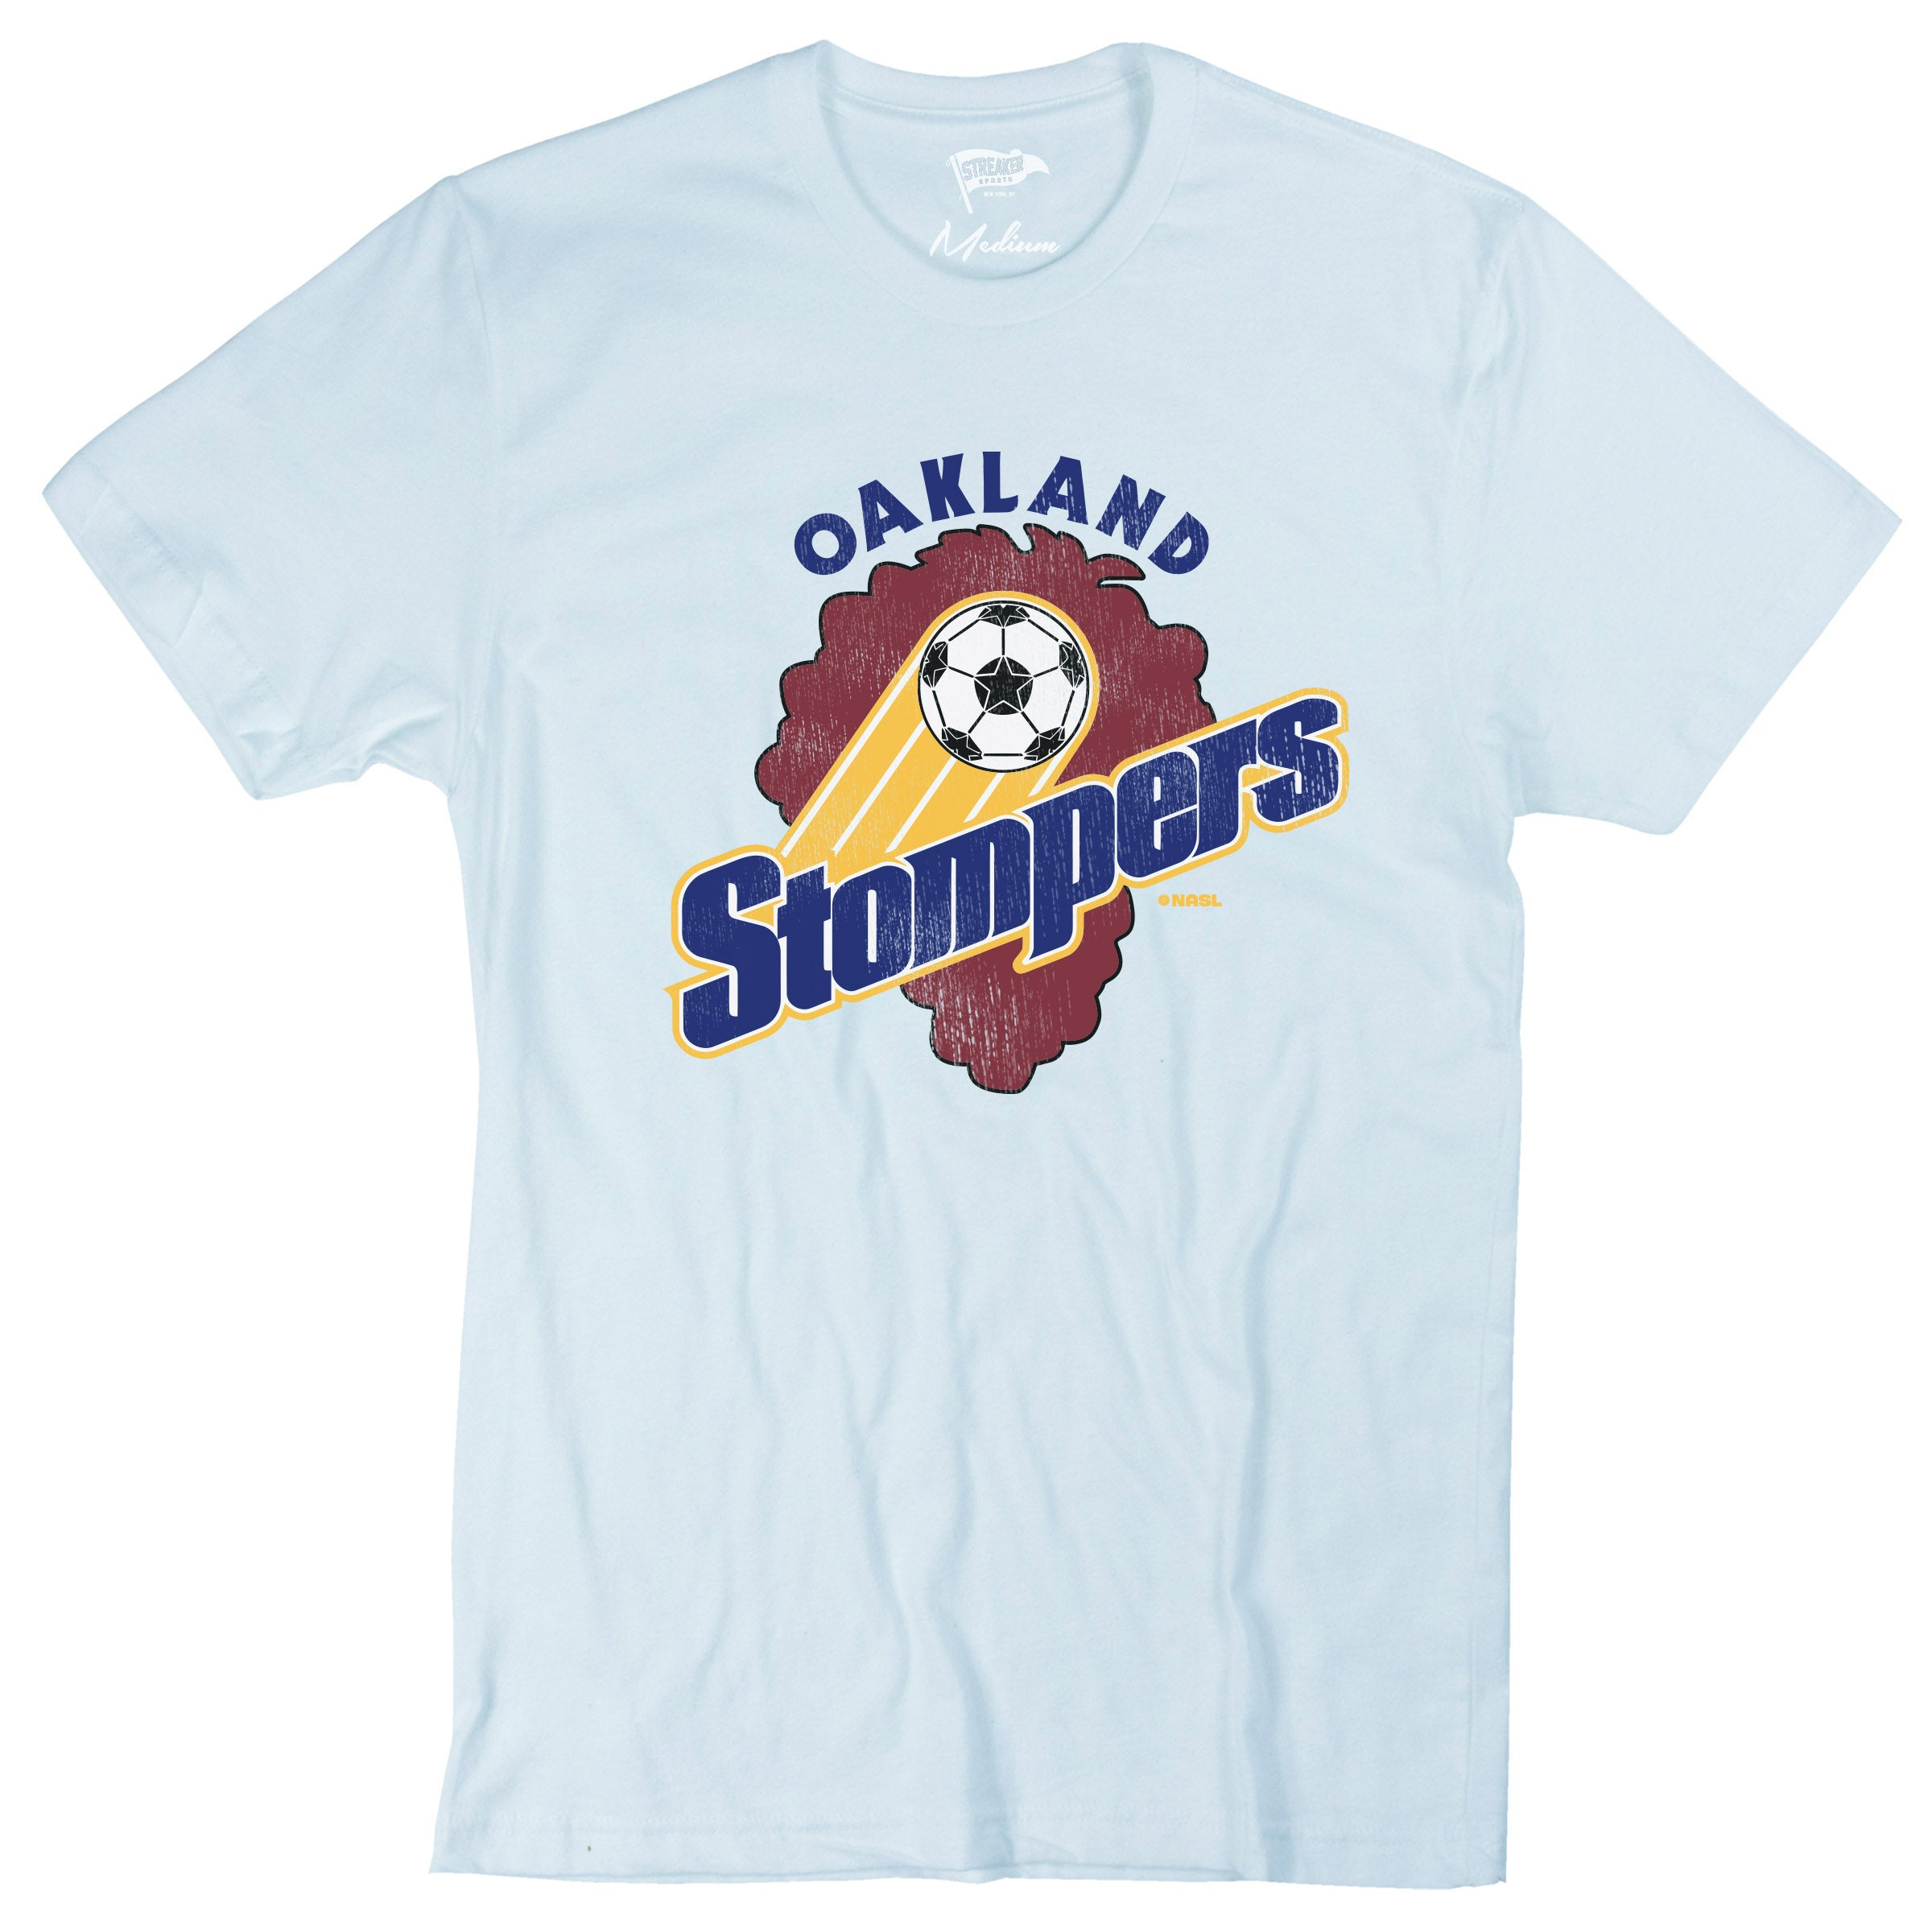 1978 Oakland Stompers Tee